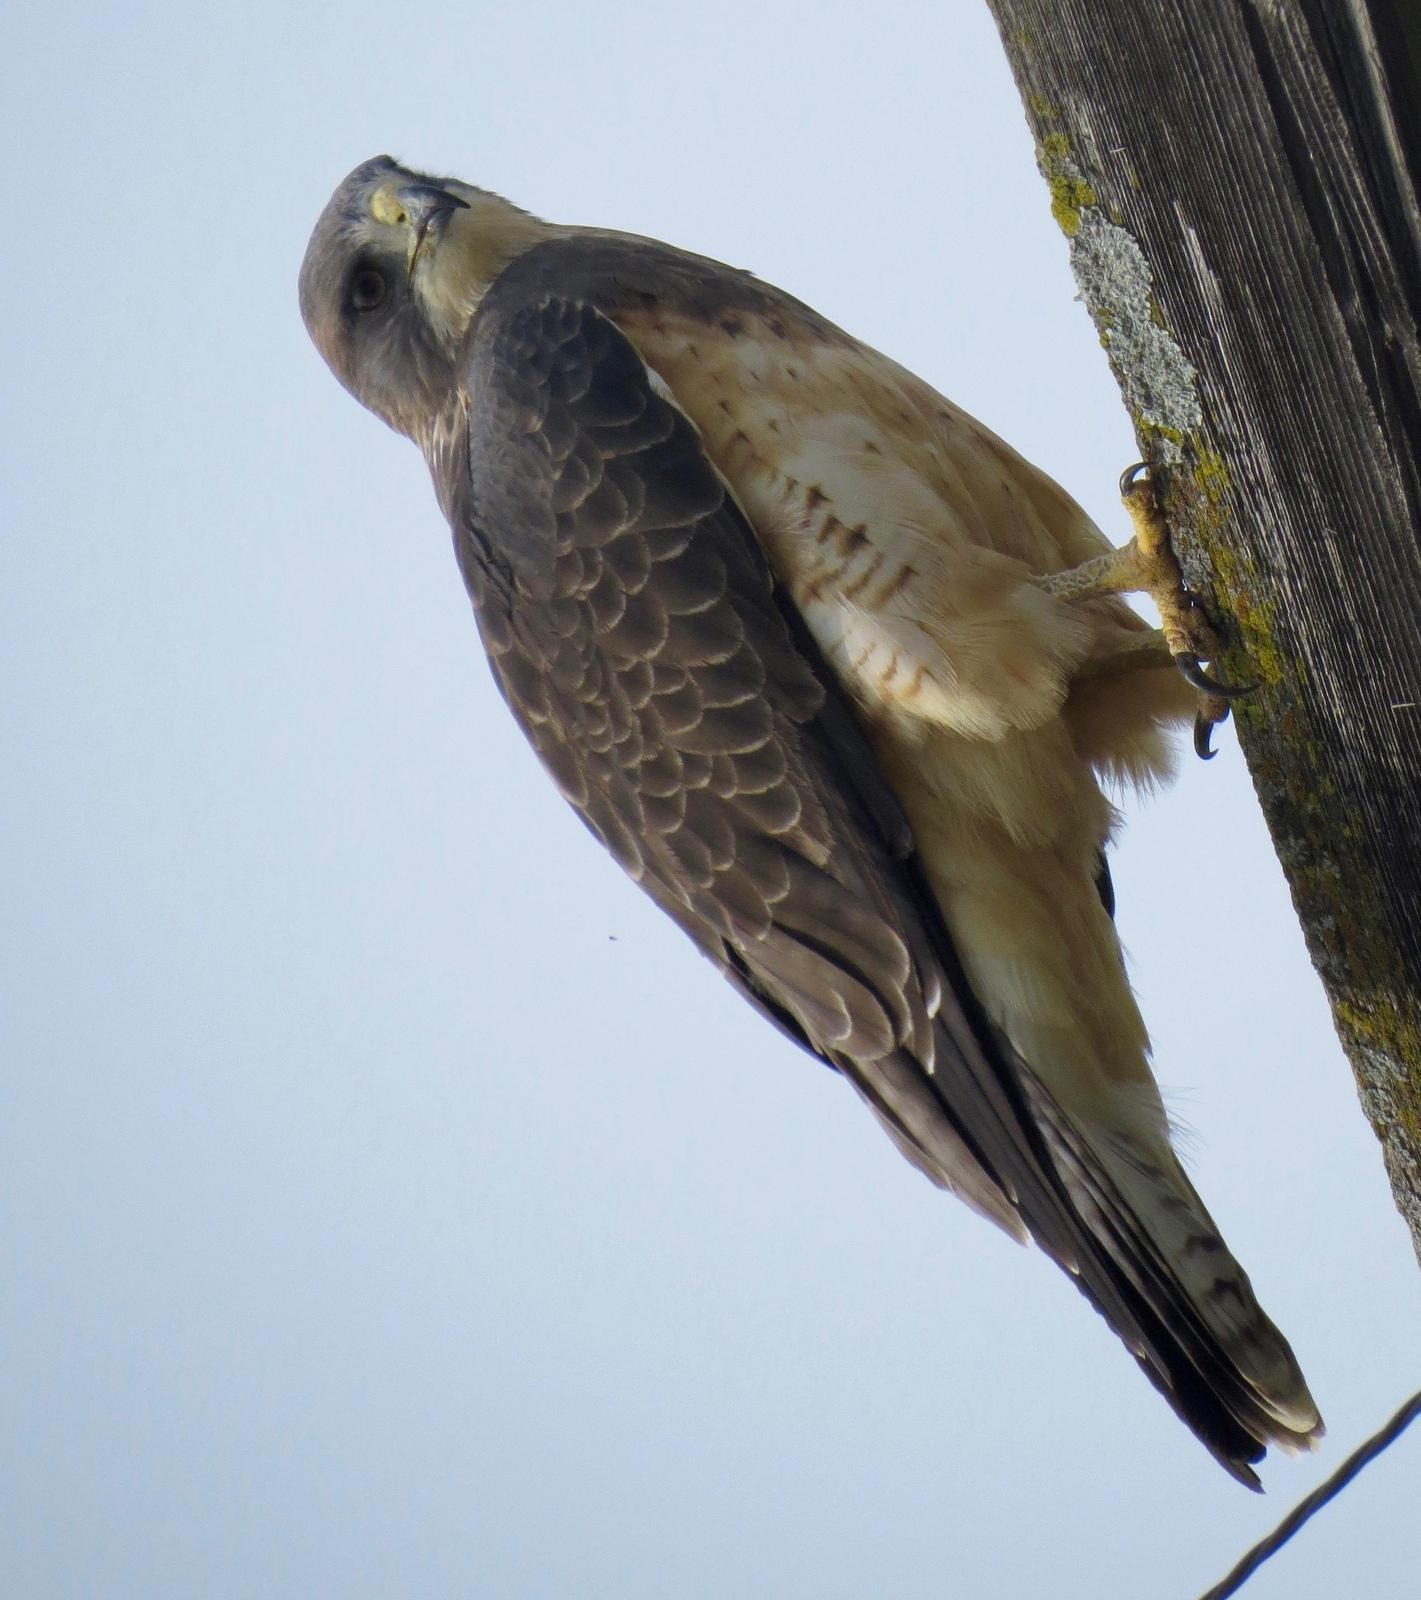 Swainson's Hawk Photo by Don Glasco